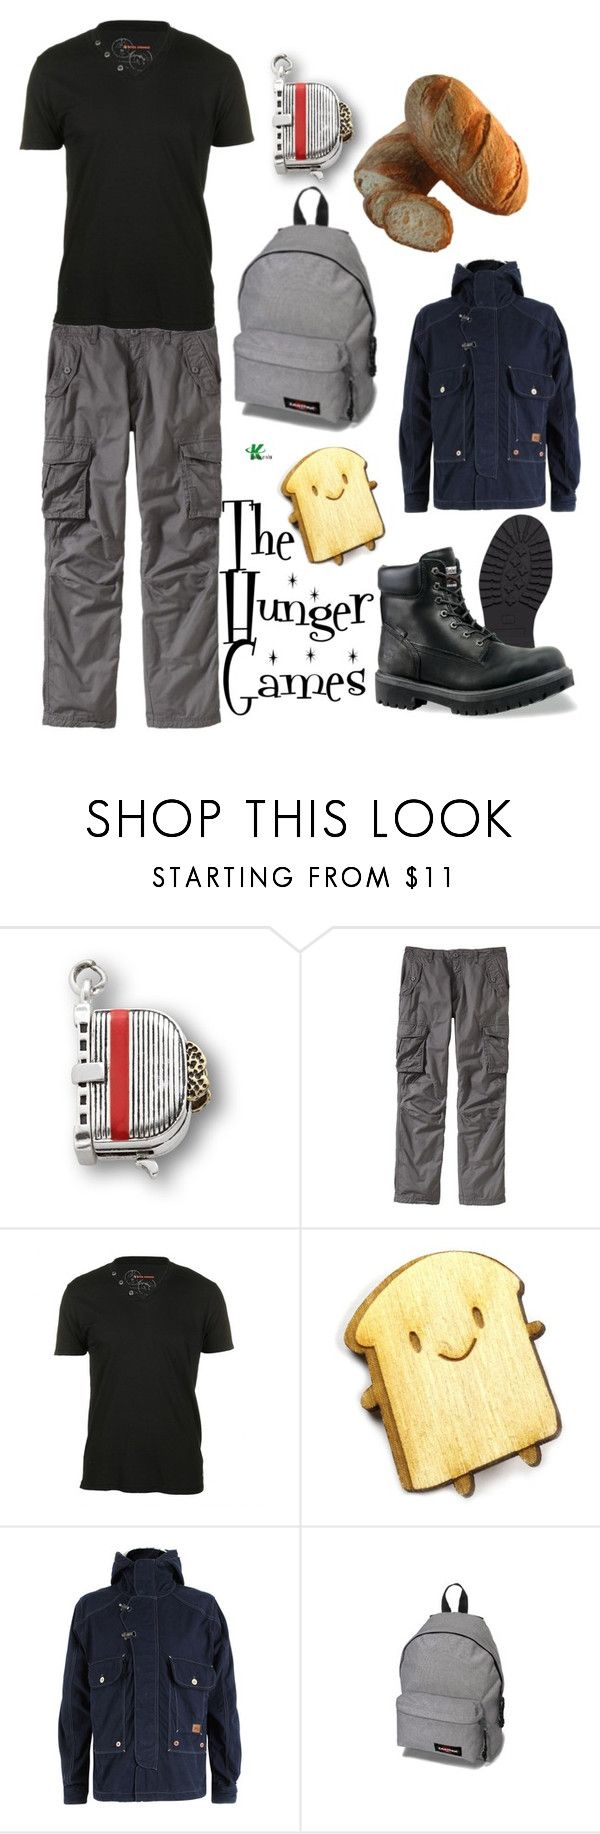 """""""The Hunger Games"""" by wearwhatyouwatch ❤ liked on Polyvore featuring FOSSIL, Old Navy, BOSS Orange, Asking For Trouble, mel, Eastpak, combat boots, menswear inspired and the hunger games"""